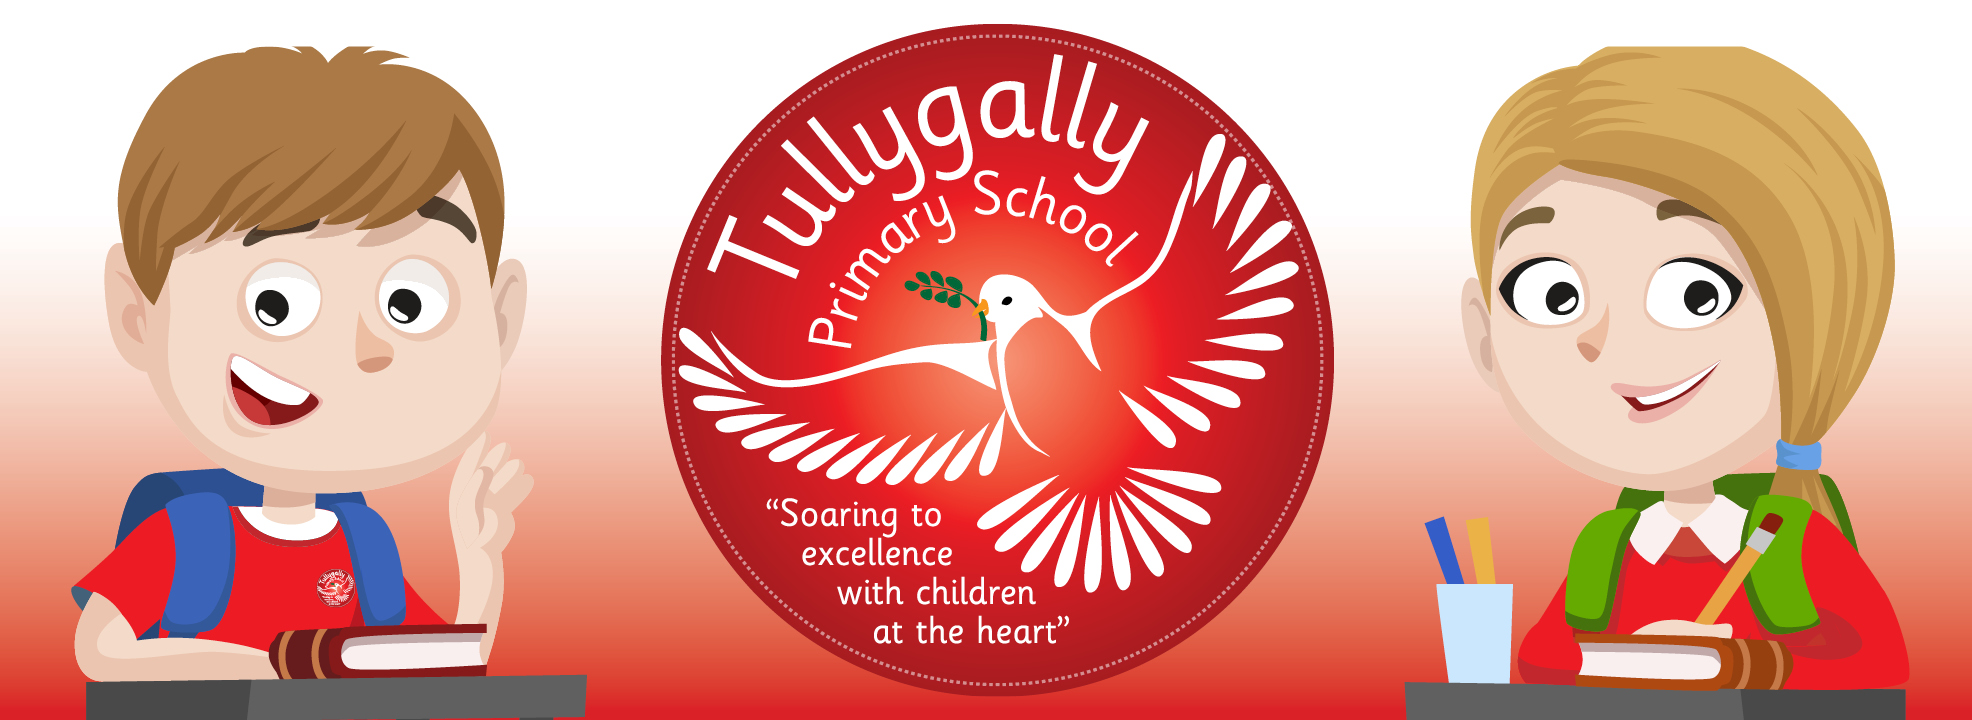 Tullygally Primary School Logo